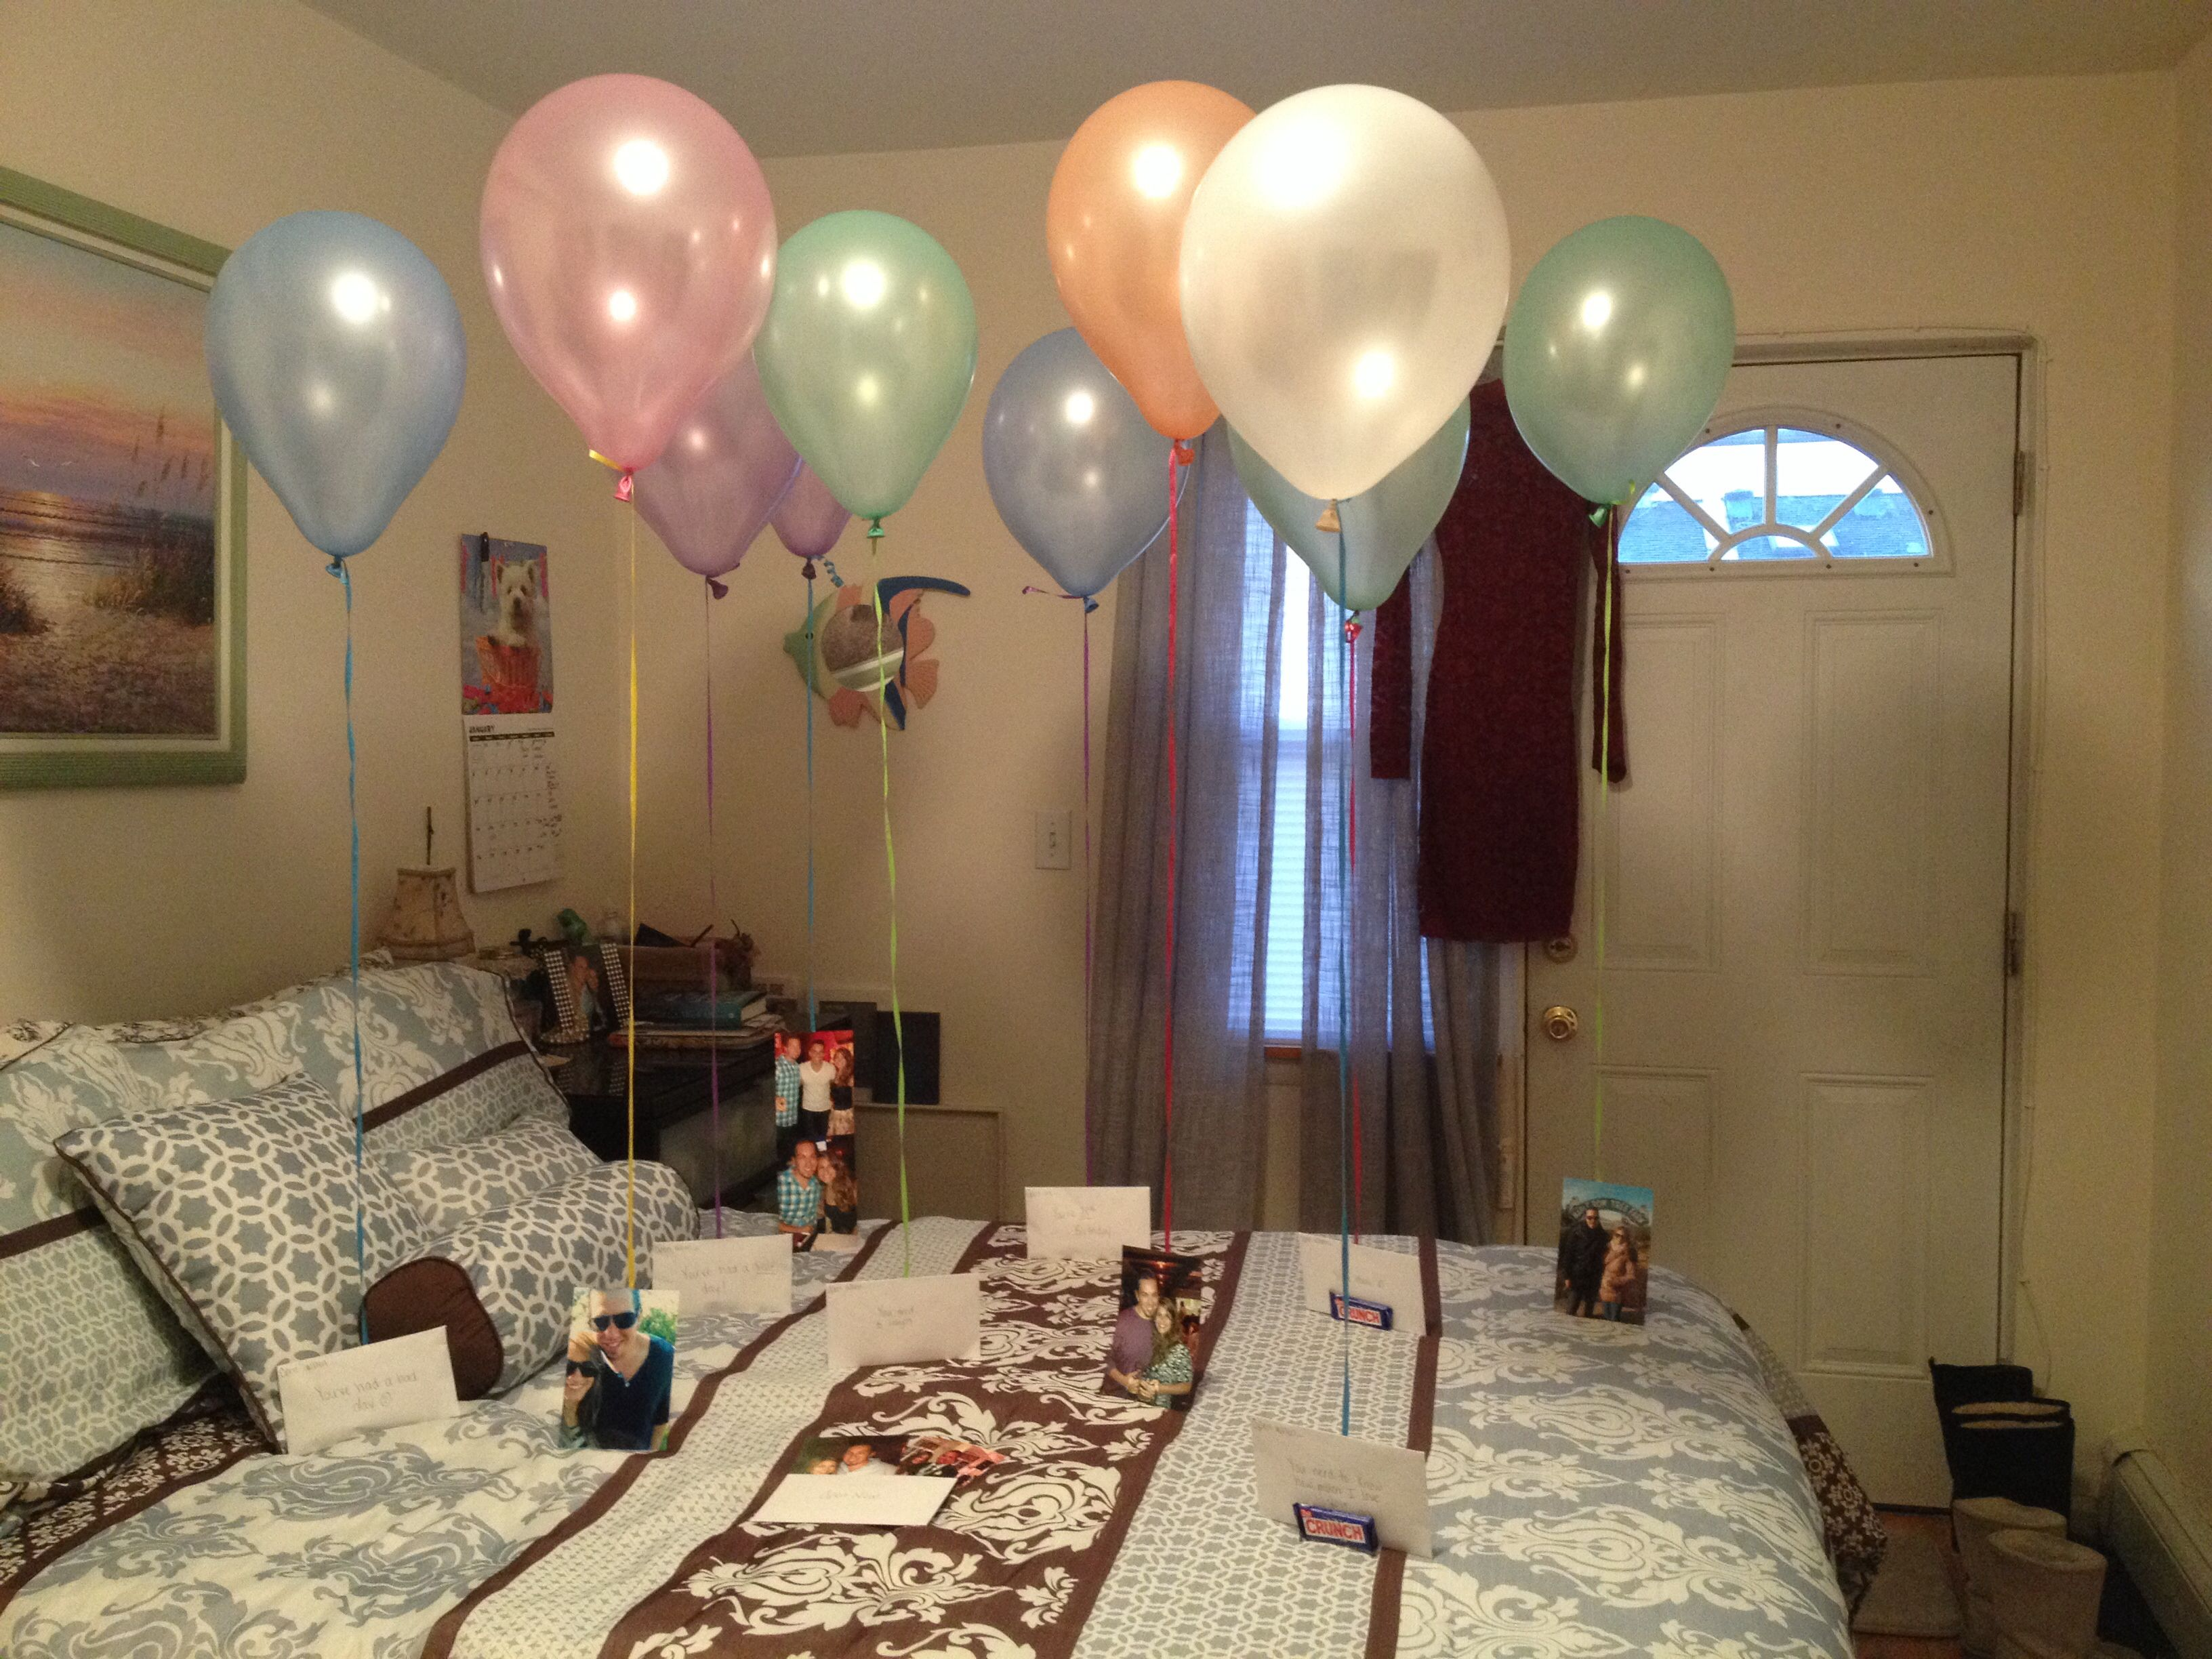 Pictures And Open When Envelopes Hanging From Balloons Perfect Birthday Gift For Boyfriend Husband